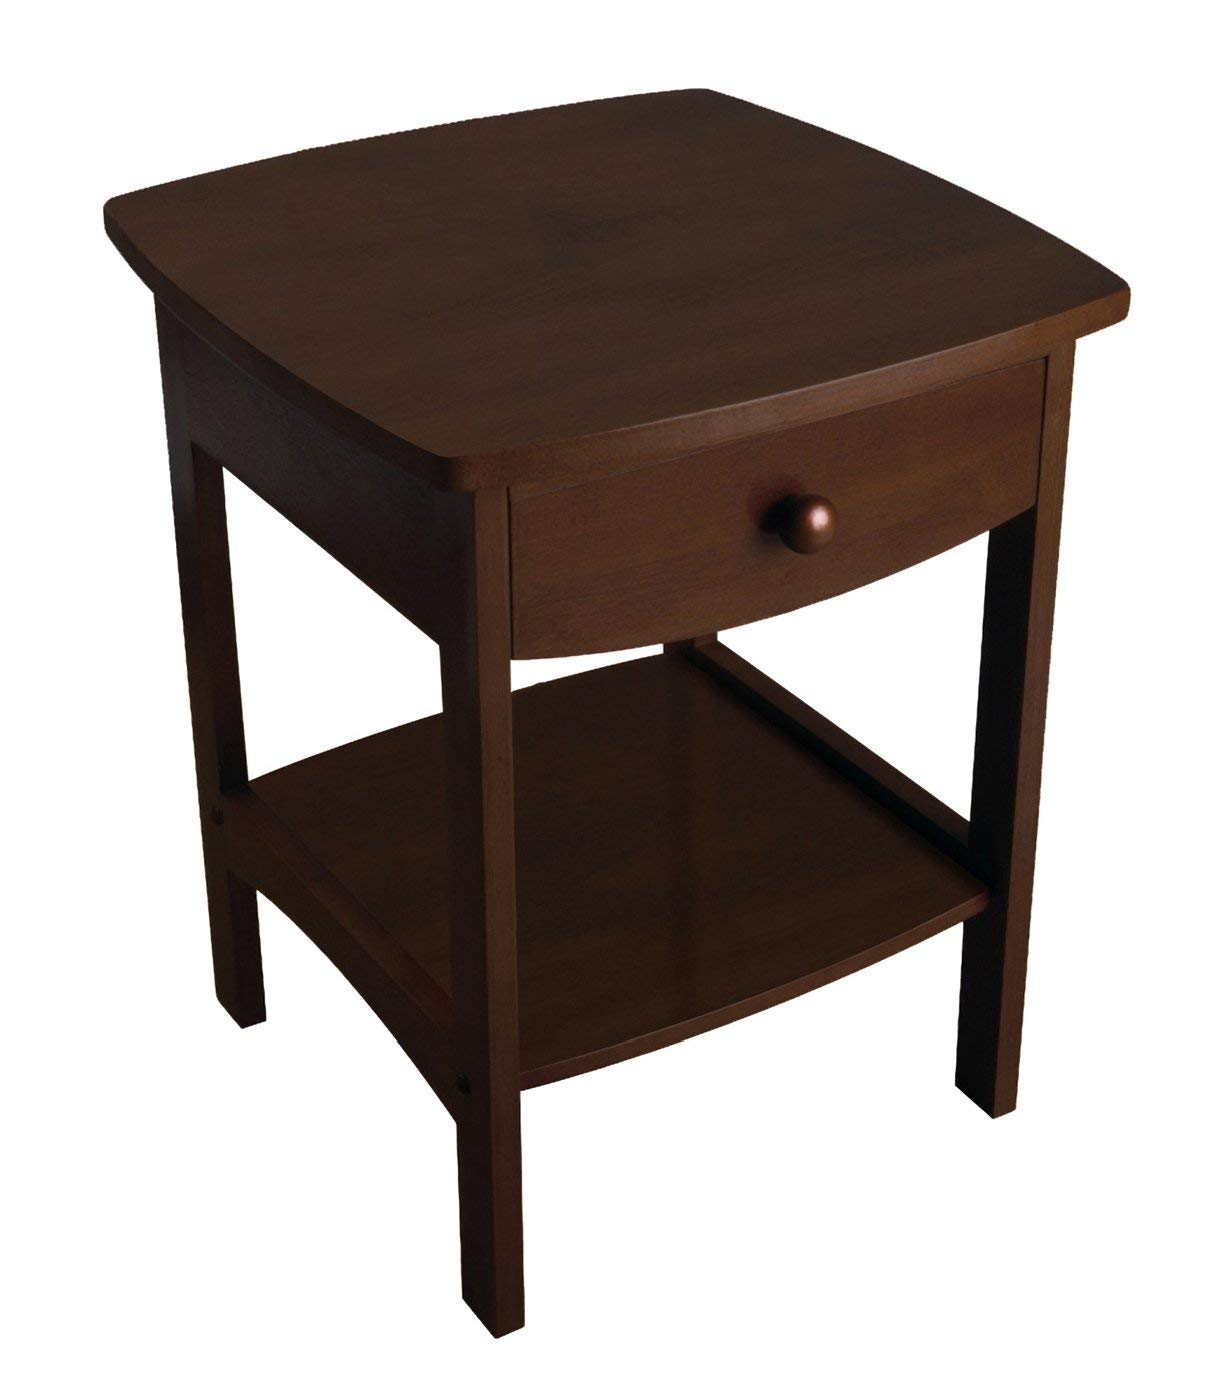 winsome wood claire accent table walnut kitchen stool dining small teal furniture paint windham threshold drop leaf desk white side round outdoor tall thin console fifties style